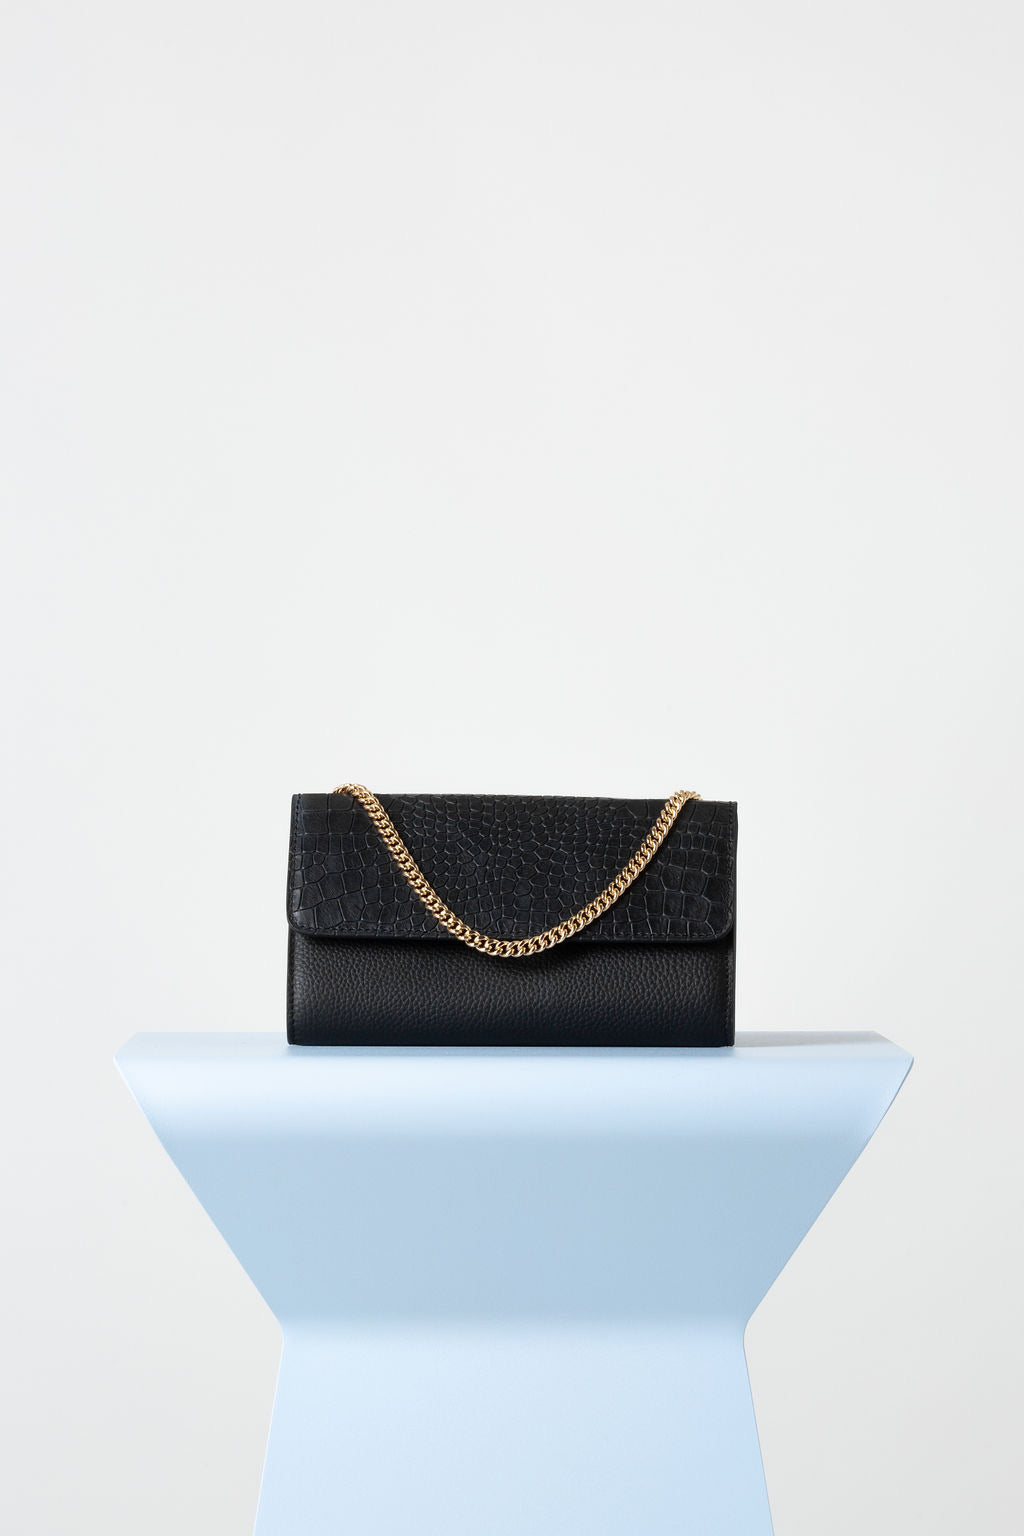 VASH II FRANKIE Evening Fold Over Mini Bag / black - croc